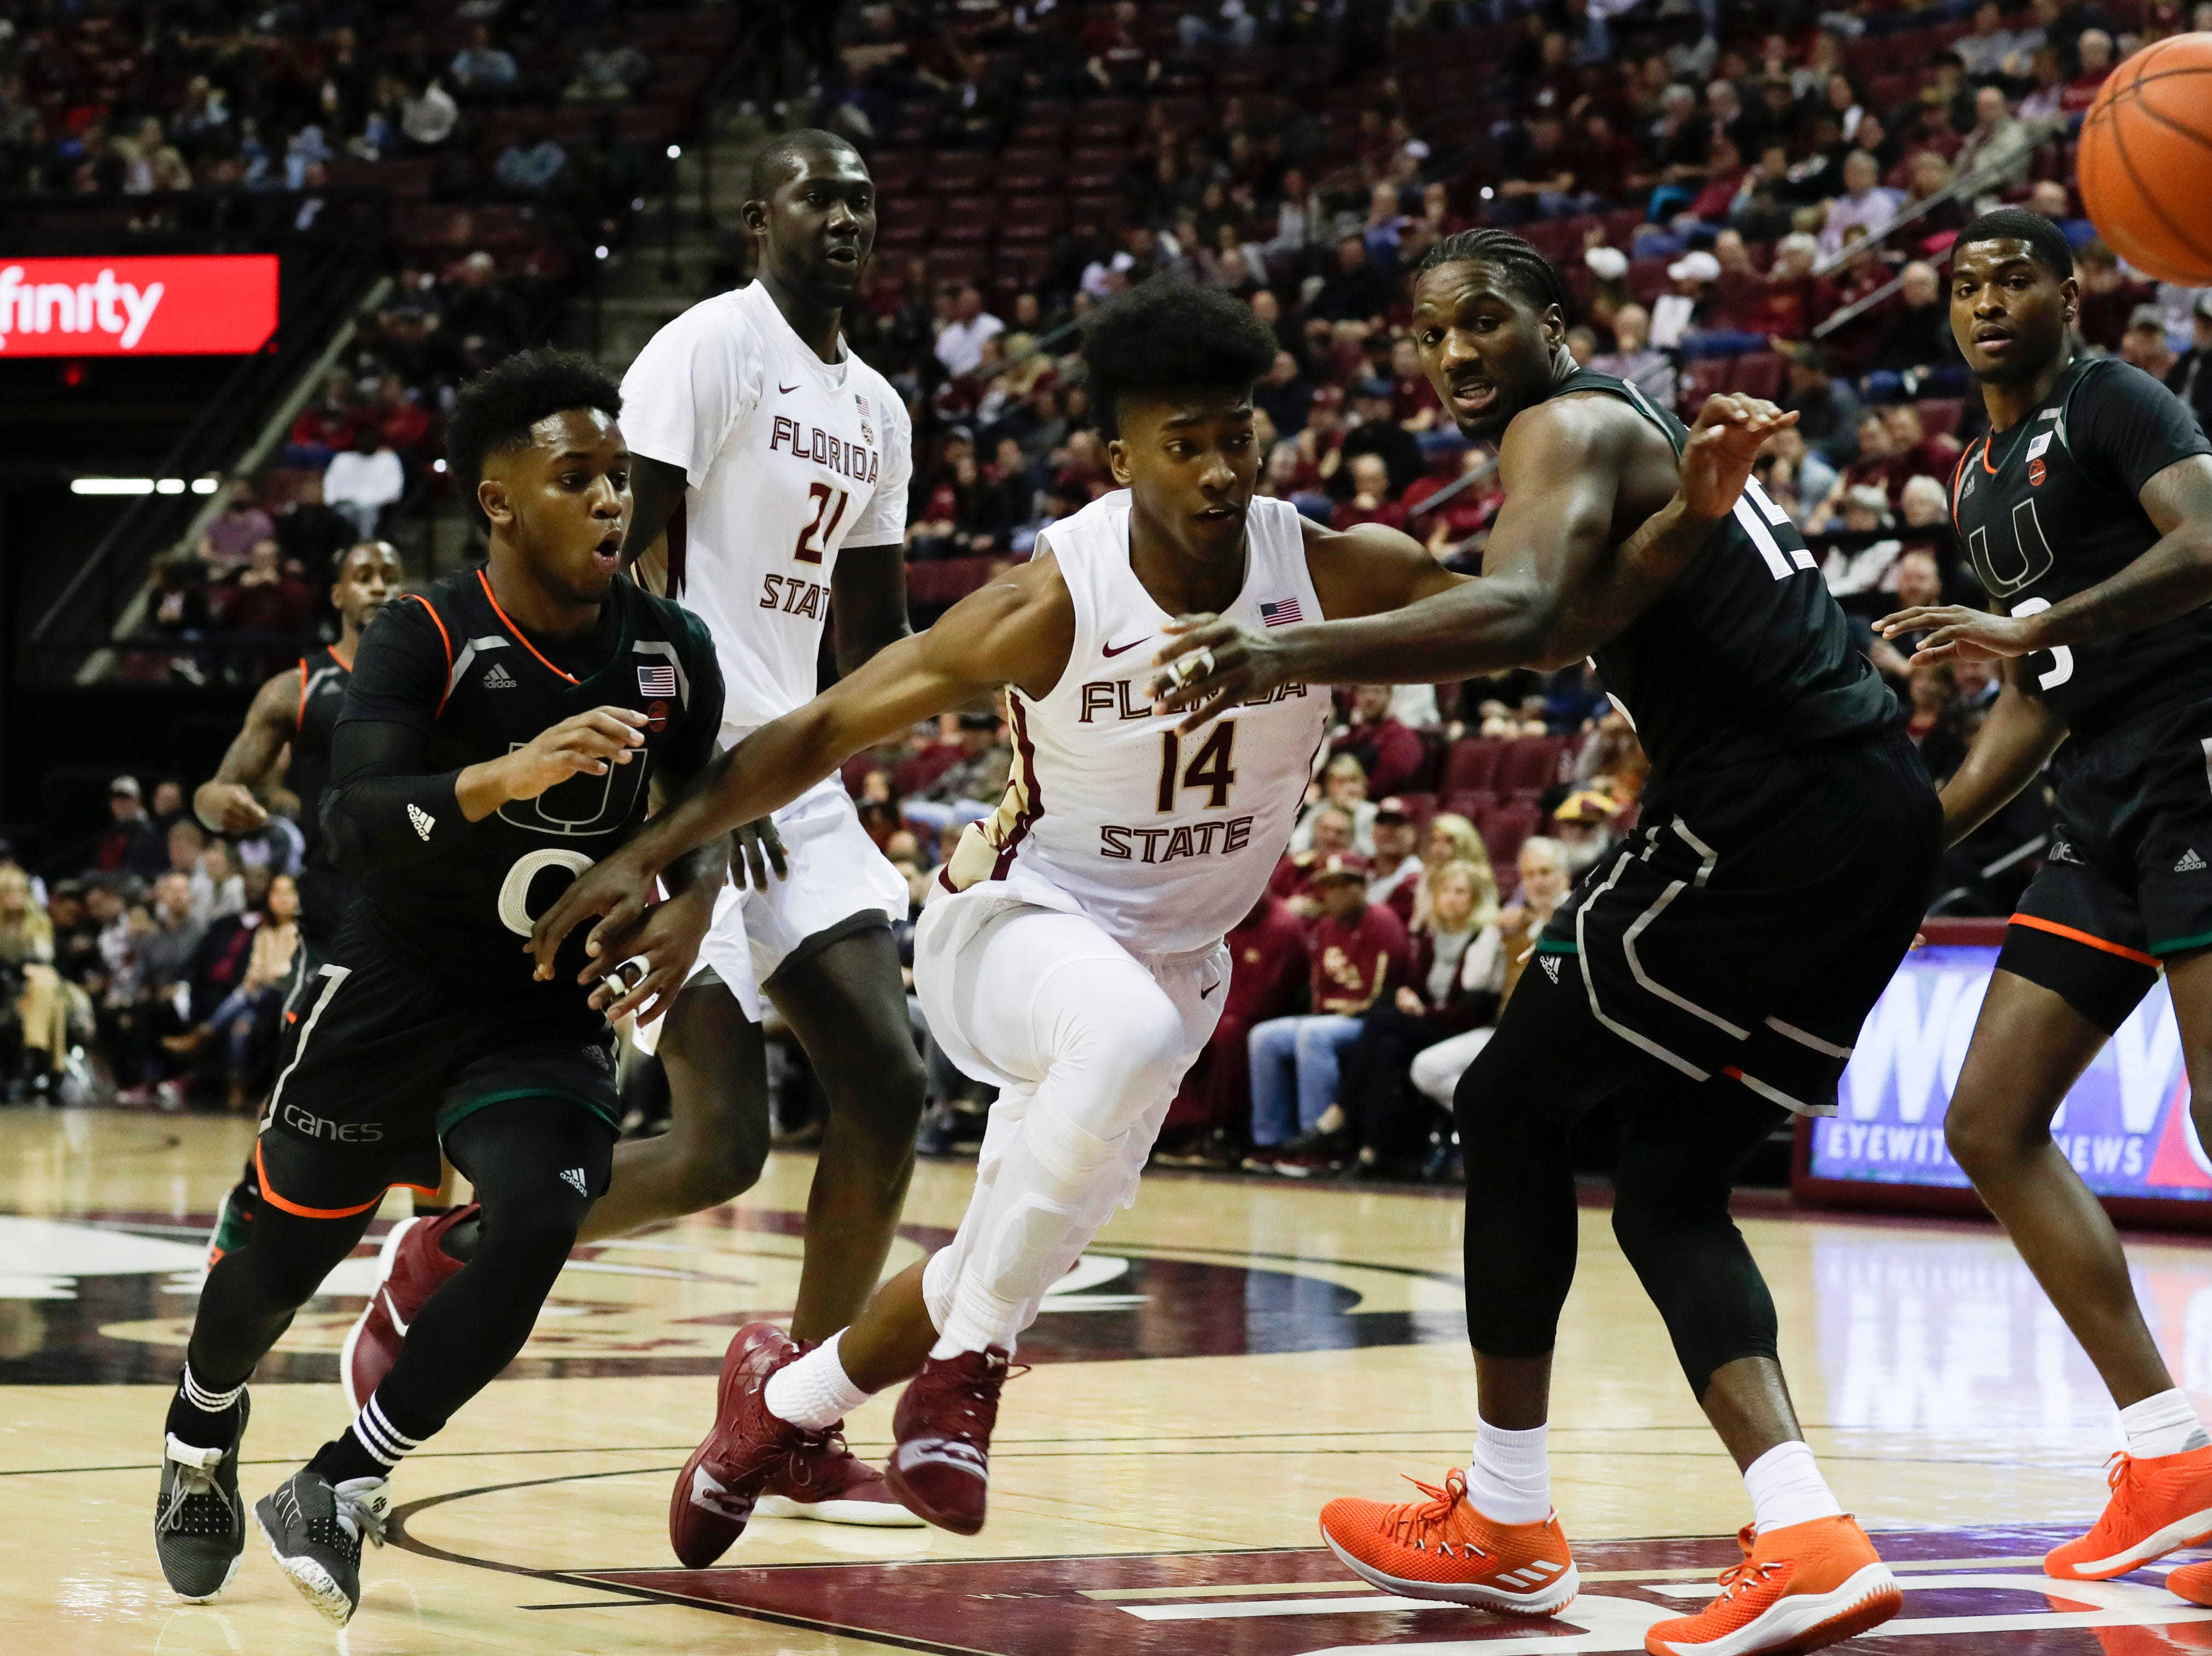 Florida State Seminoles guard Terance Mann (14) chases a loose ball during a game between FSU and University of Miami Wednesday, Jan. 9, 2019.